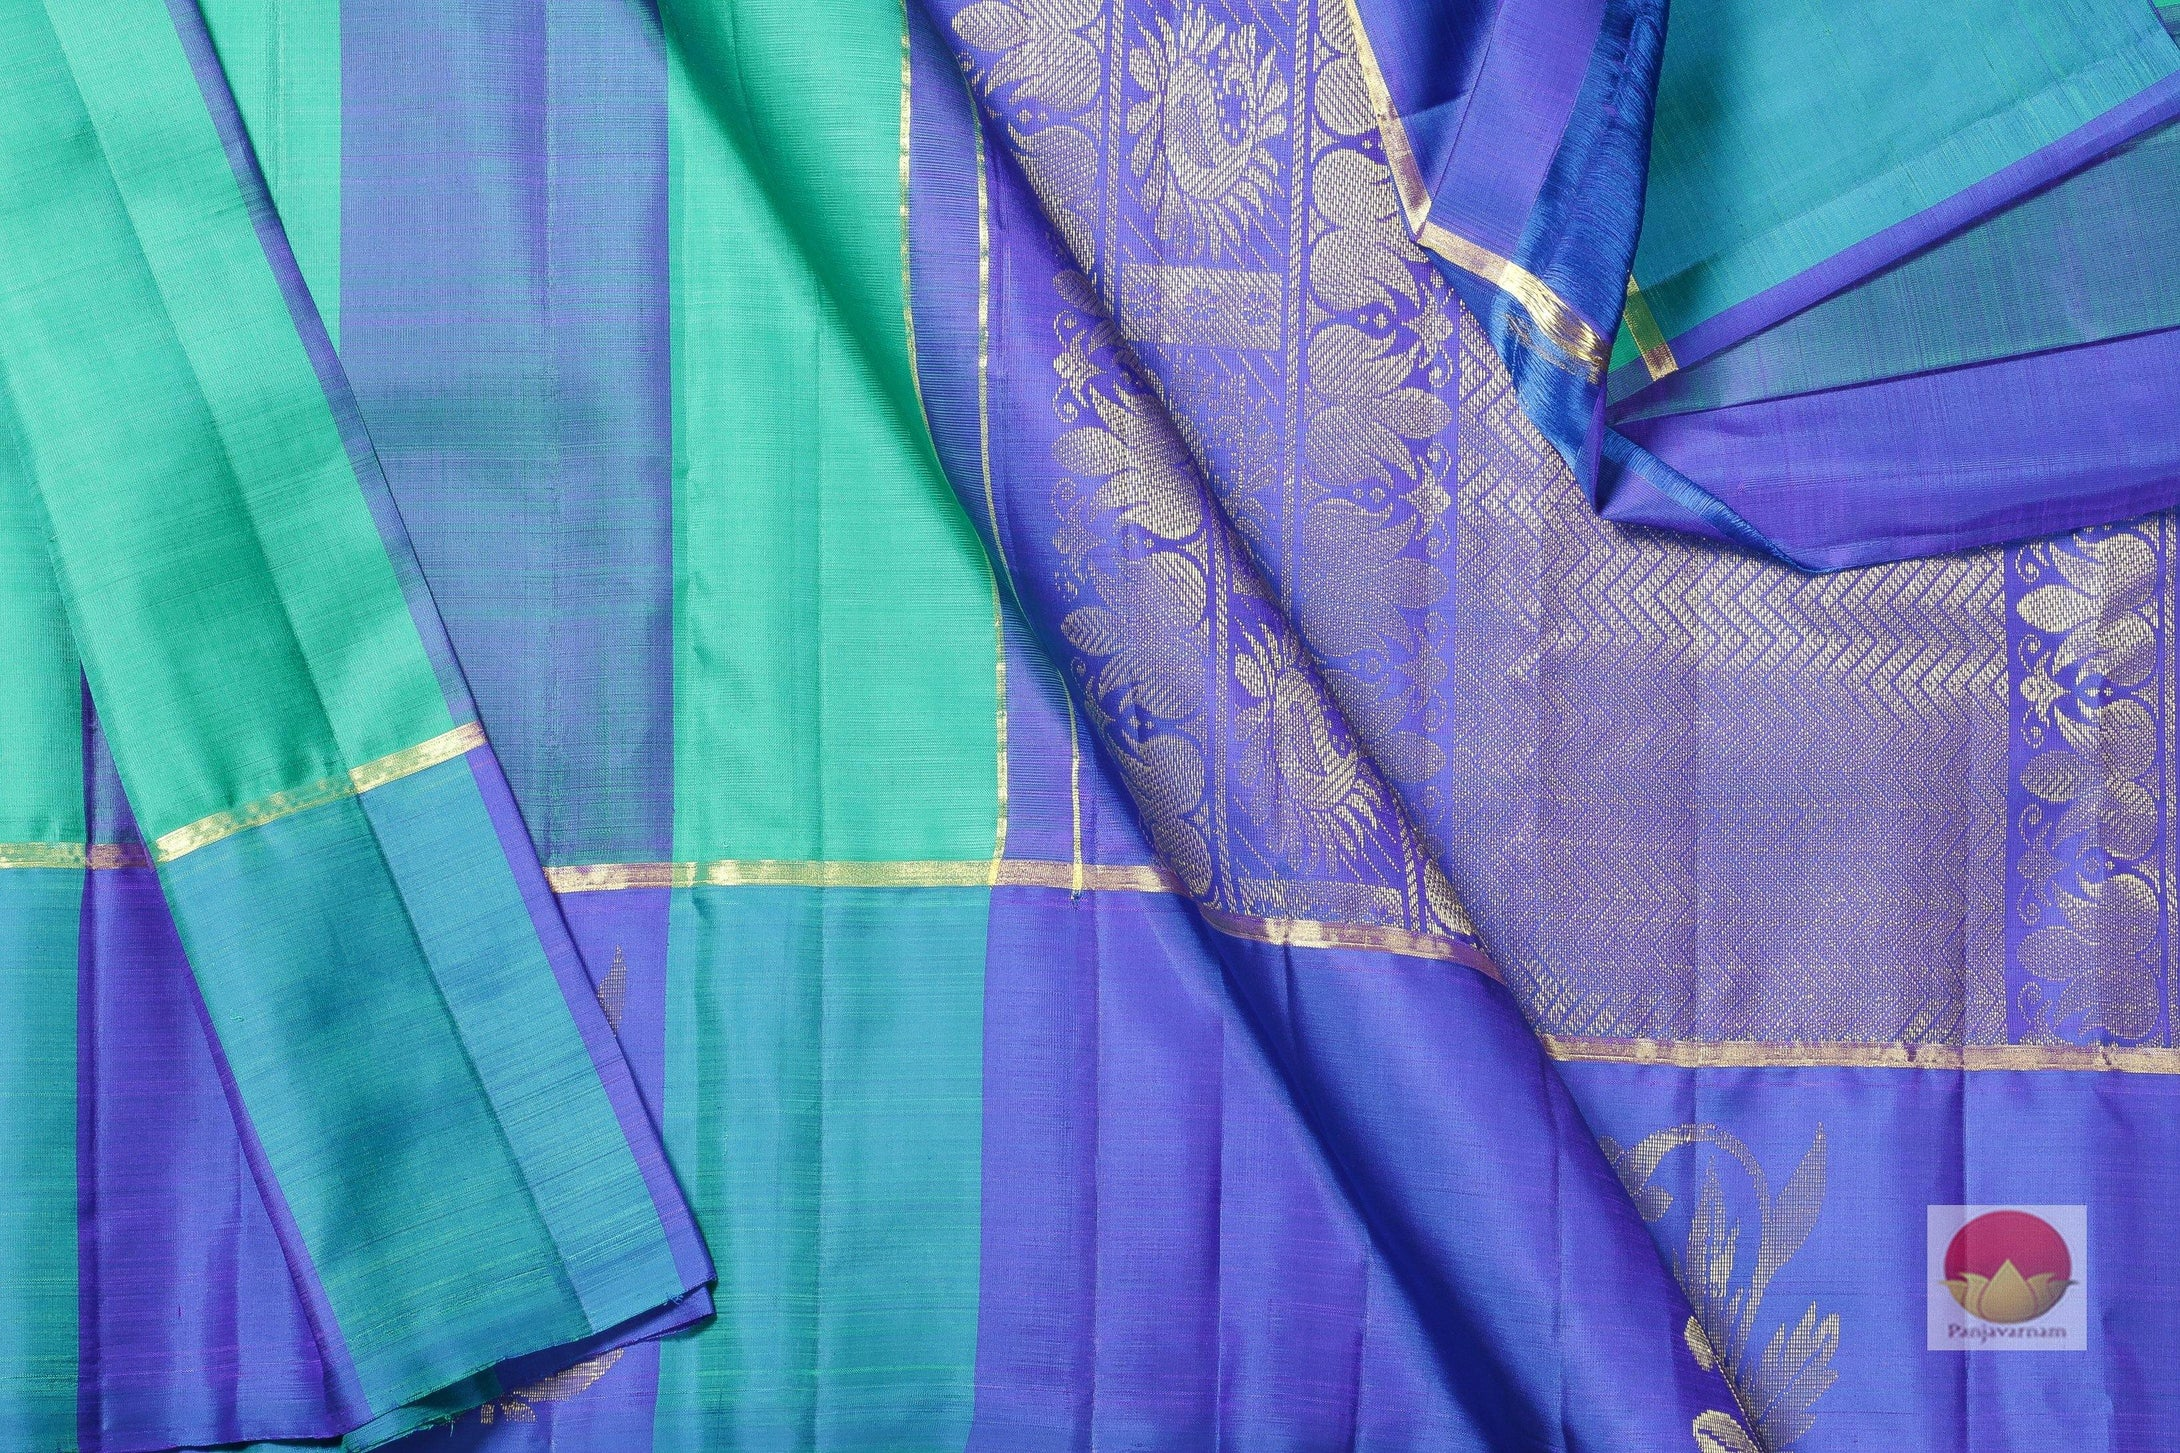 body, border and pallu of blue kanjivaram pure silk saree